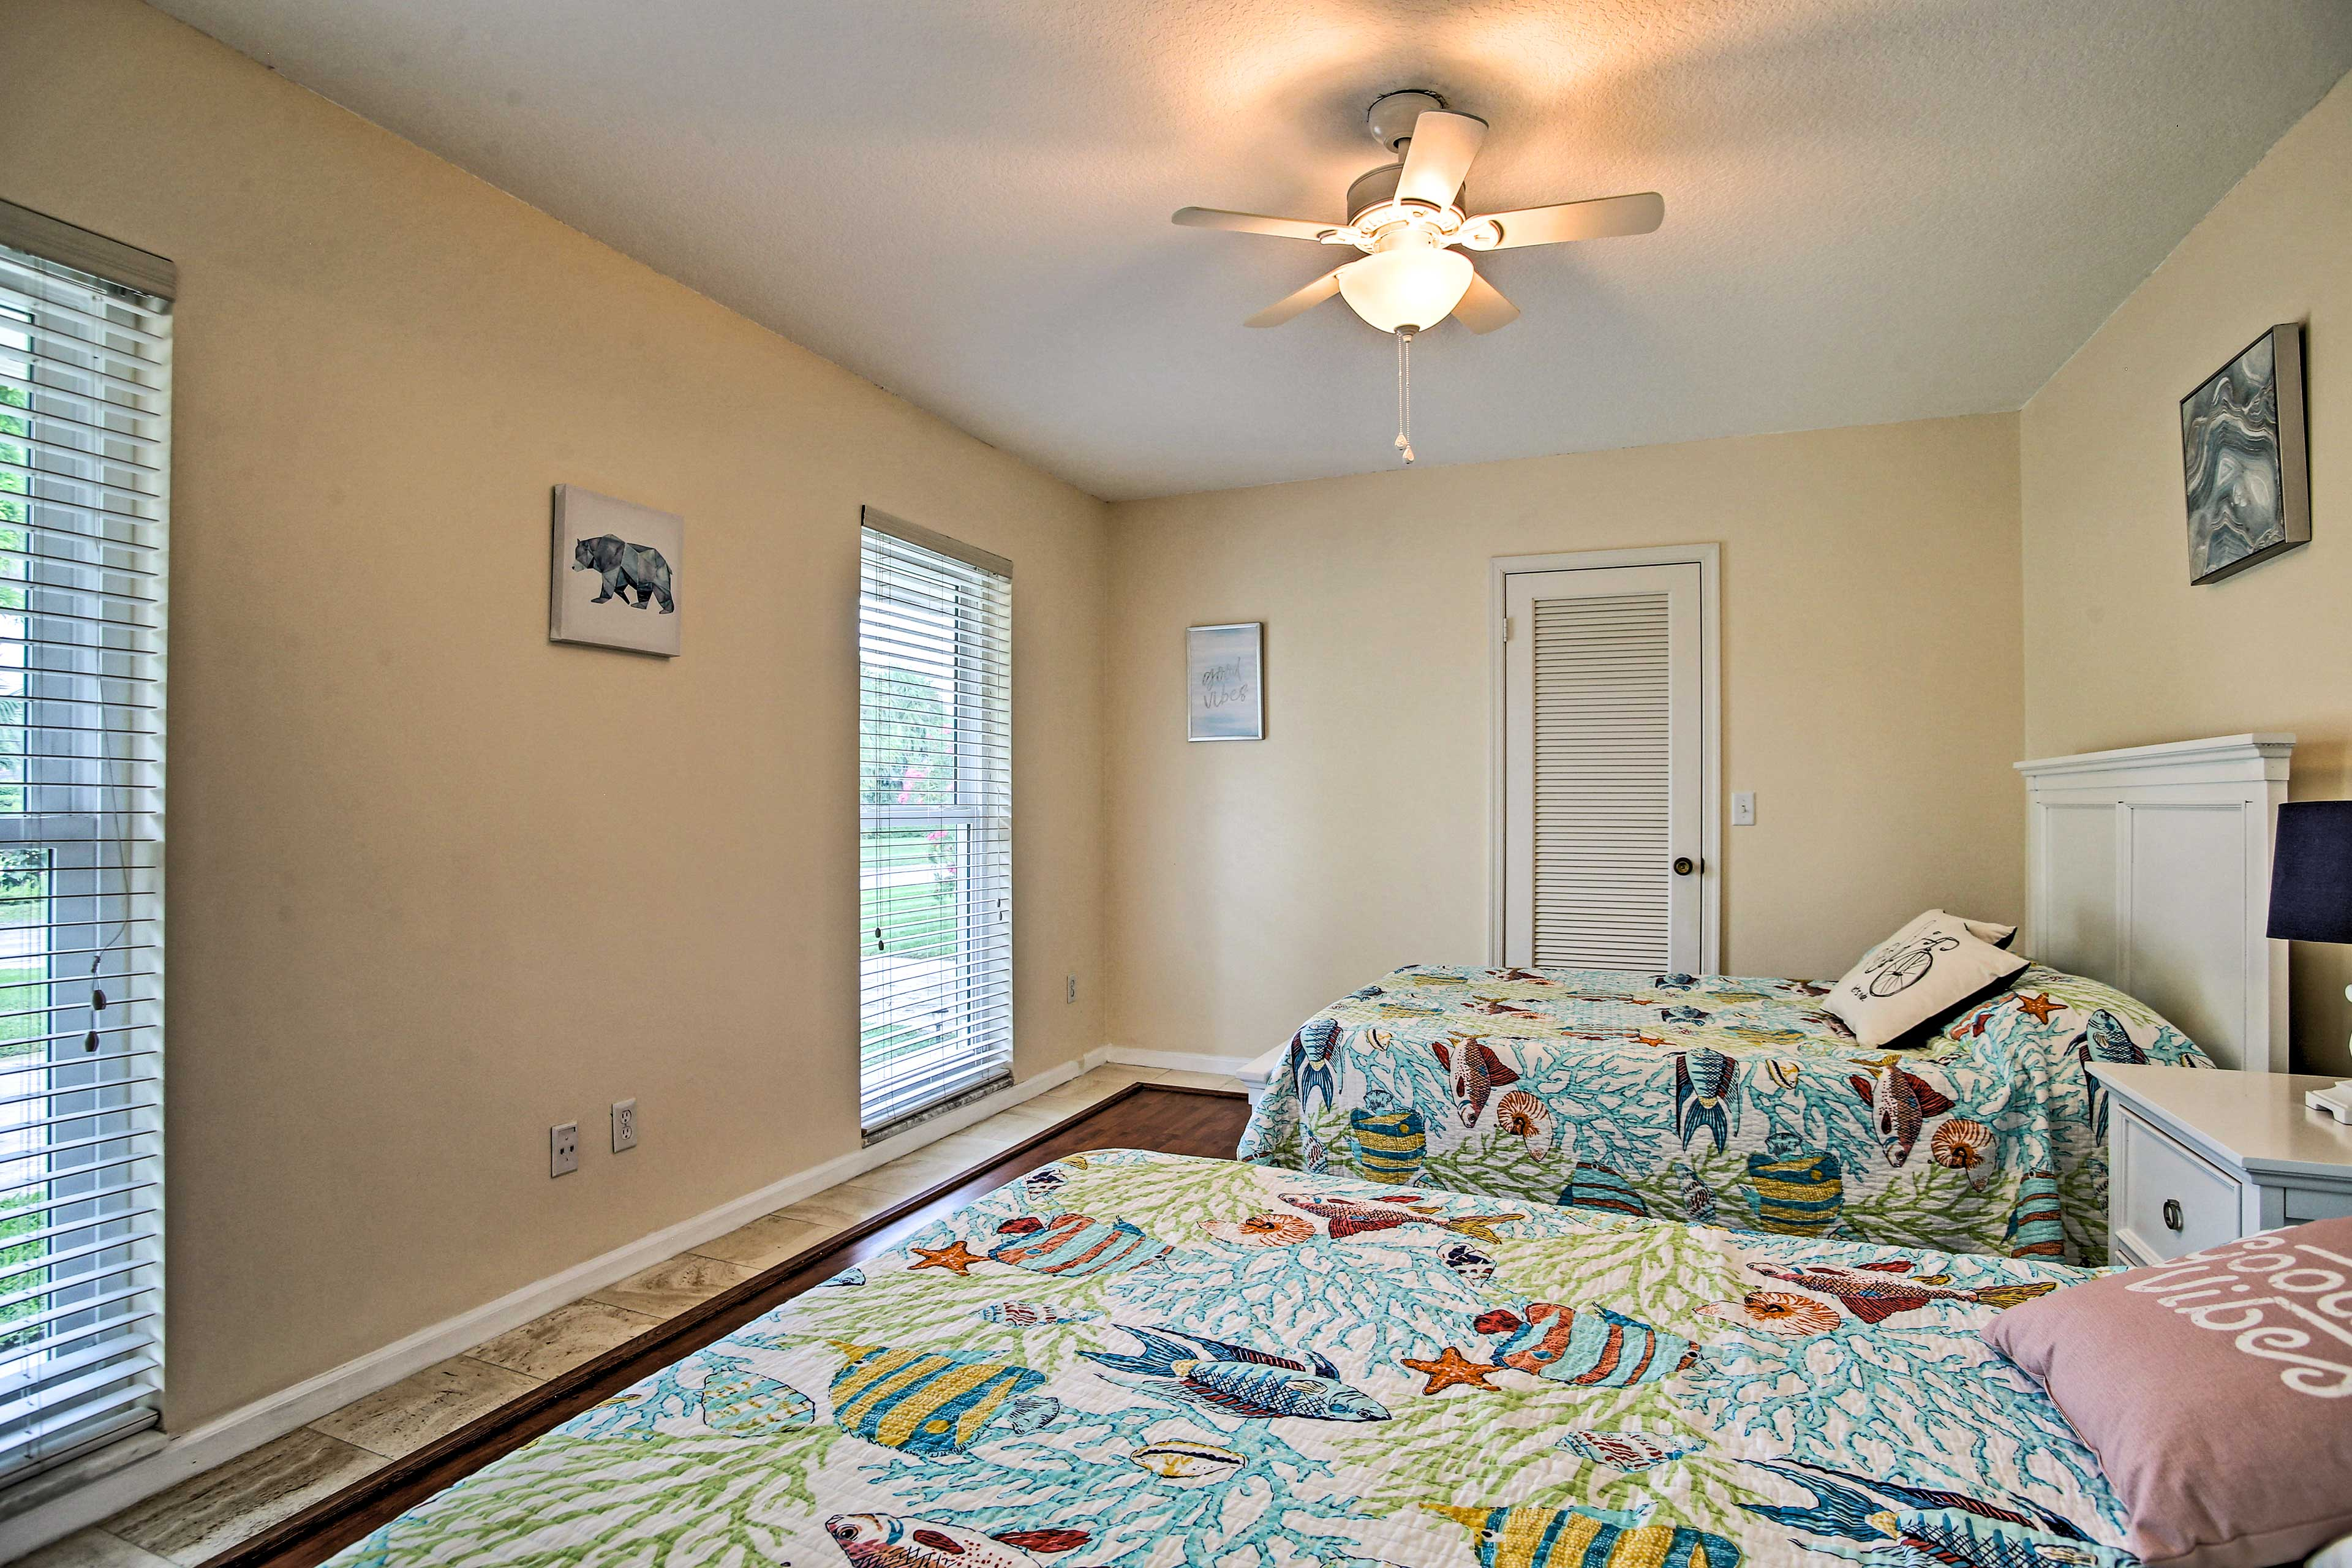 This bedroom includes 2 full-sized beds.